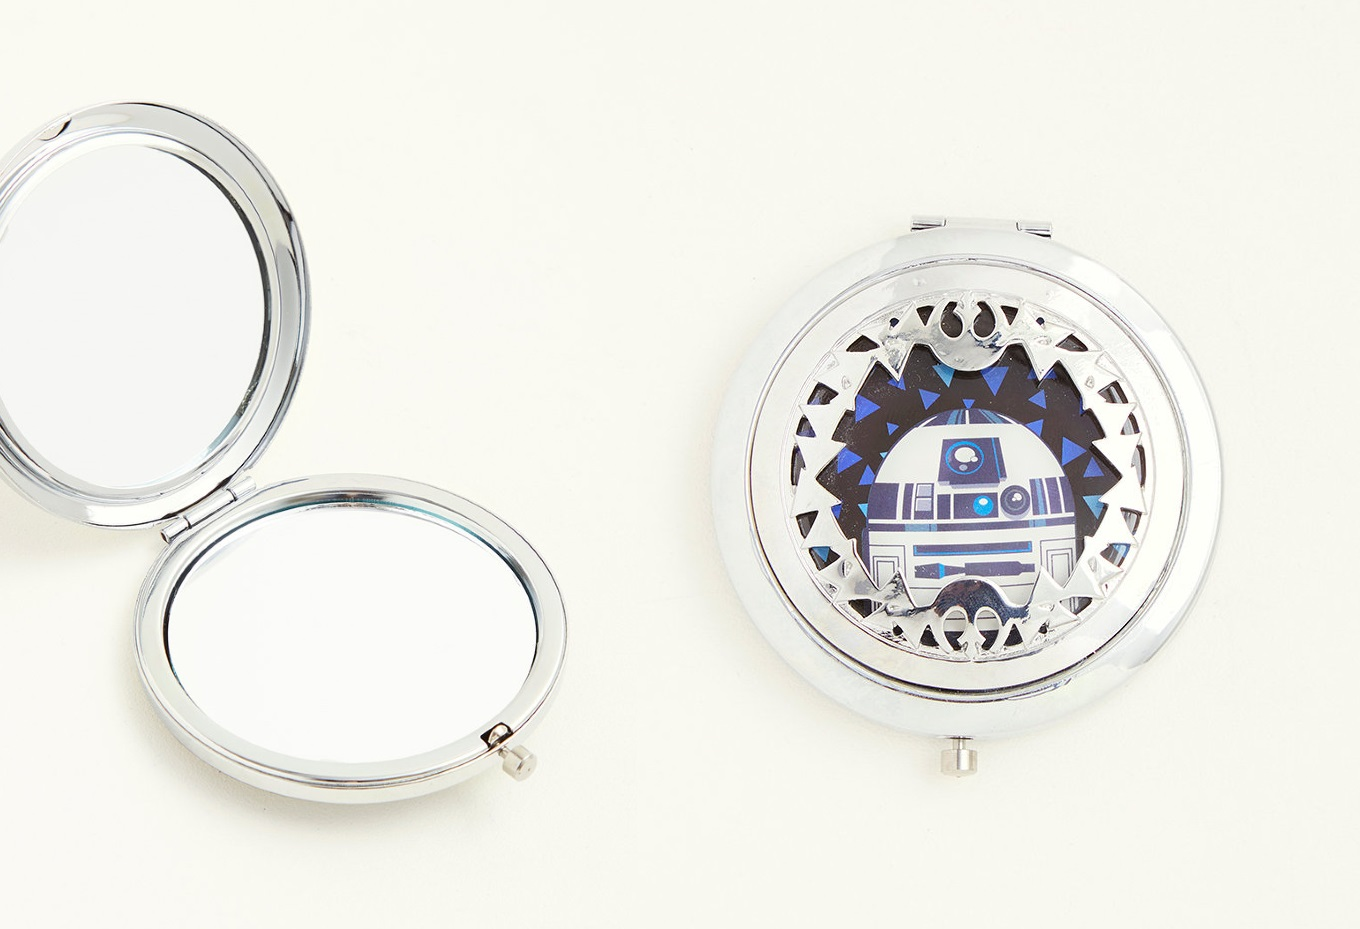 R2-D2 Cut-Out Pocket Mirror at Torrid